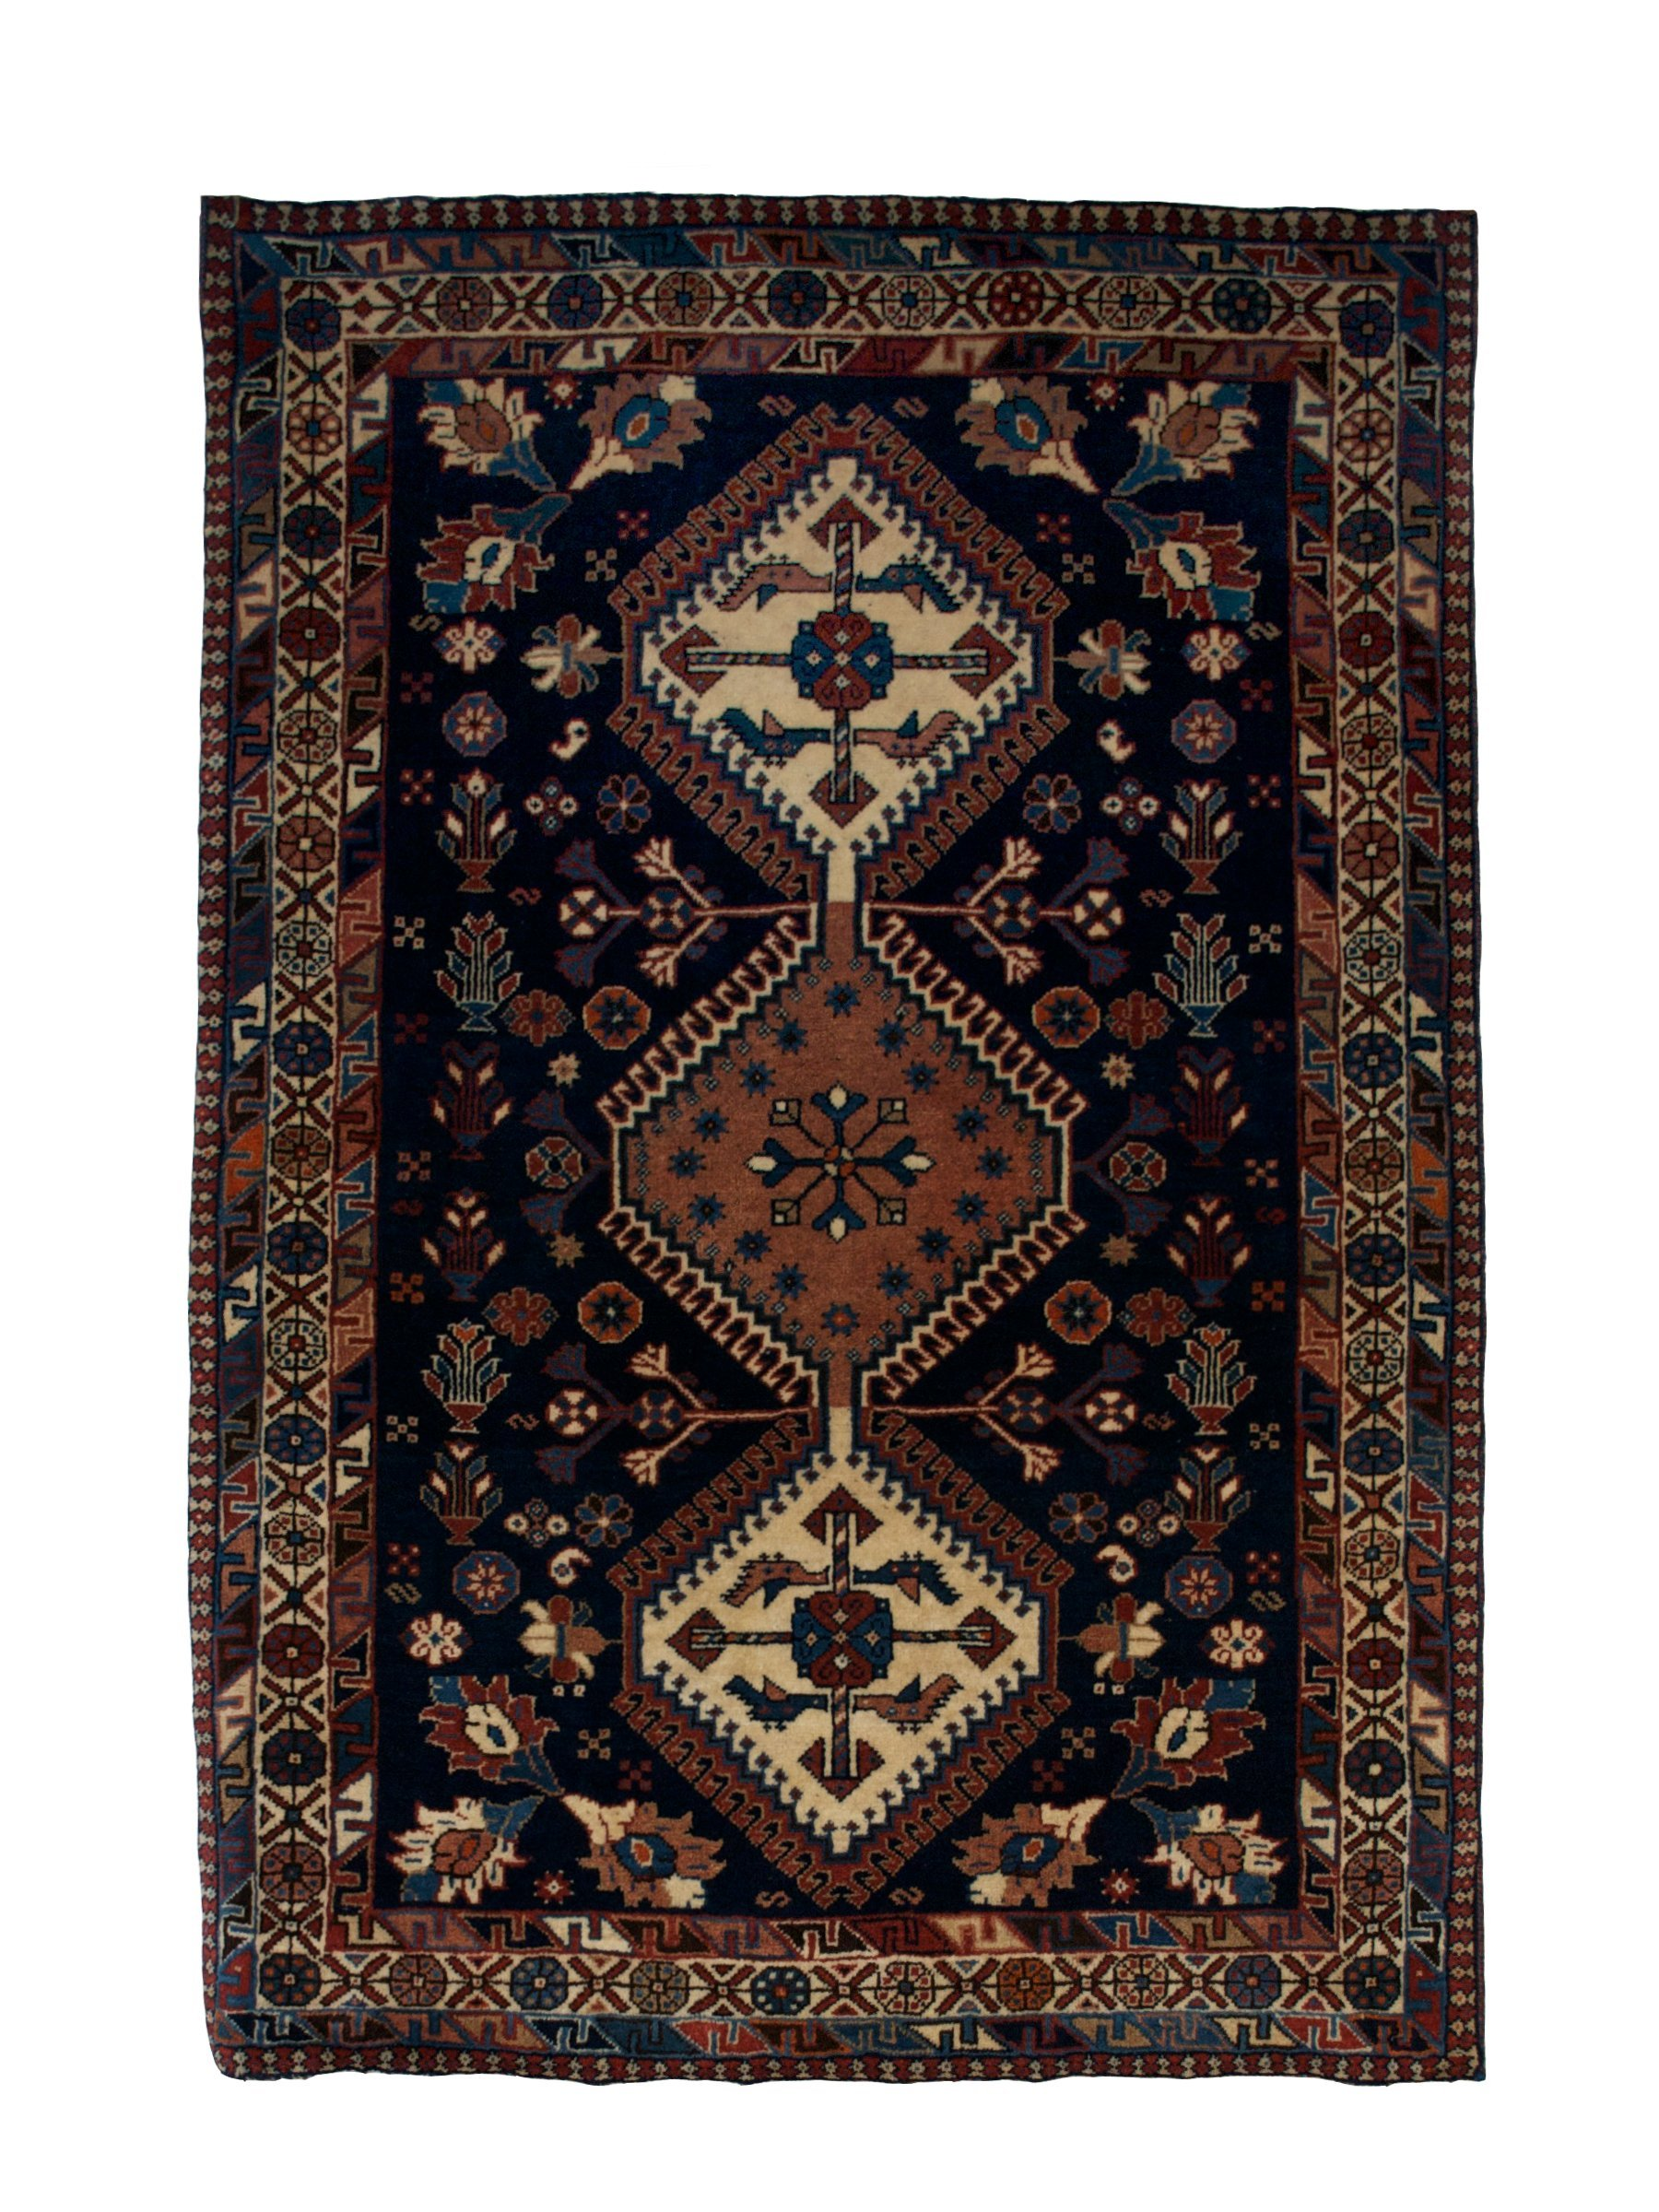 "Persian Yallameh 2' 8"" x 3' 11"" Navy Blue Wool Handmade Area Rug - Shabahang Royal Carpet"